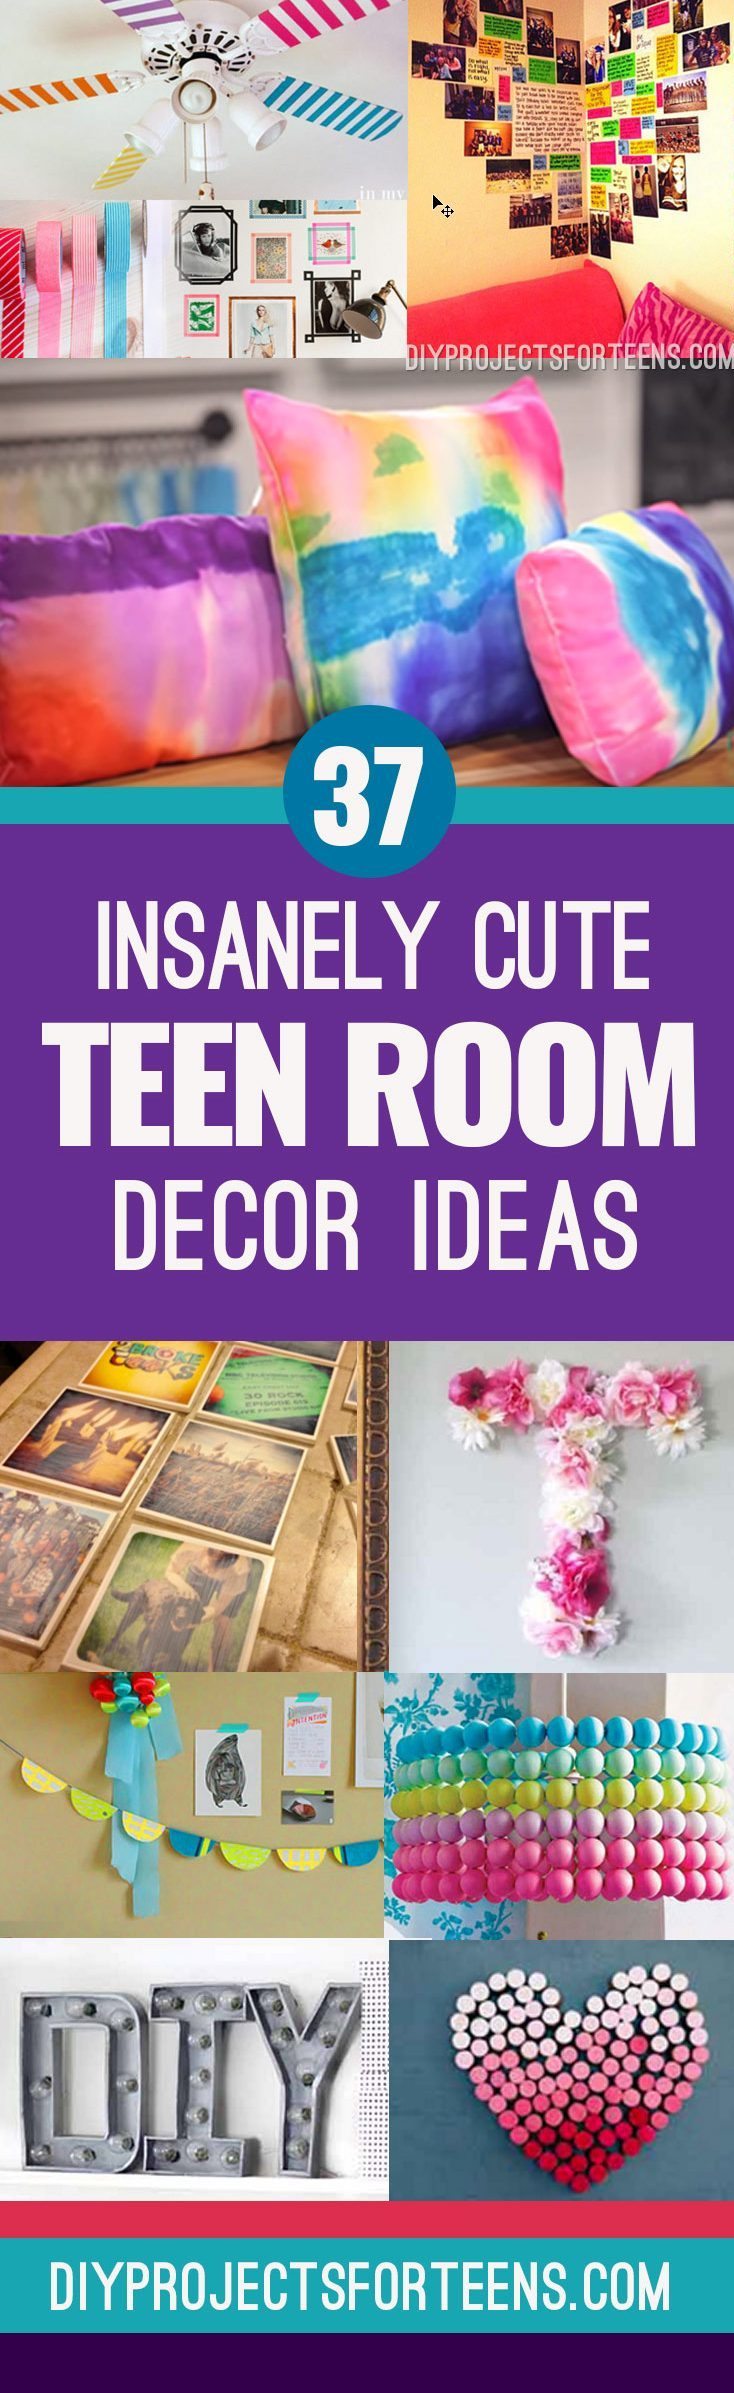 Cute DIY Room Decor Ideas for Teens - Cool and Creative DIY Room Decor Ideas from Pinterest, Youtube and Top DIY Blogs